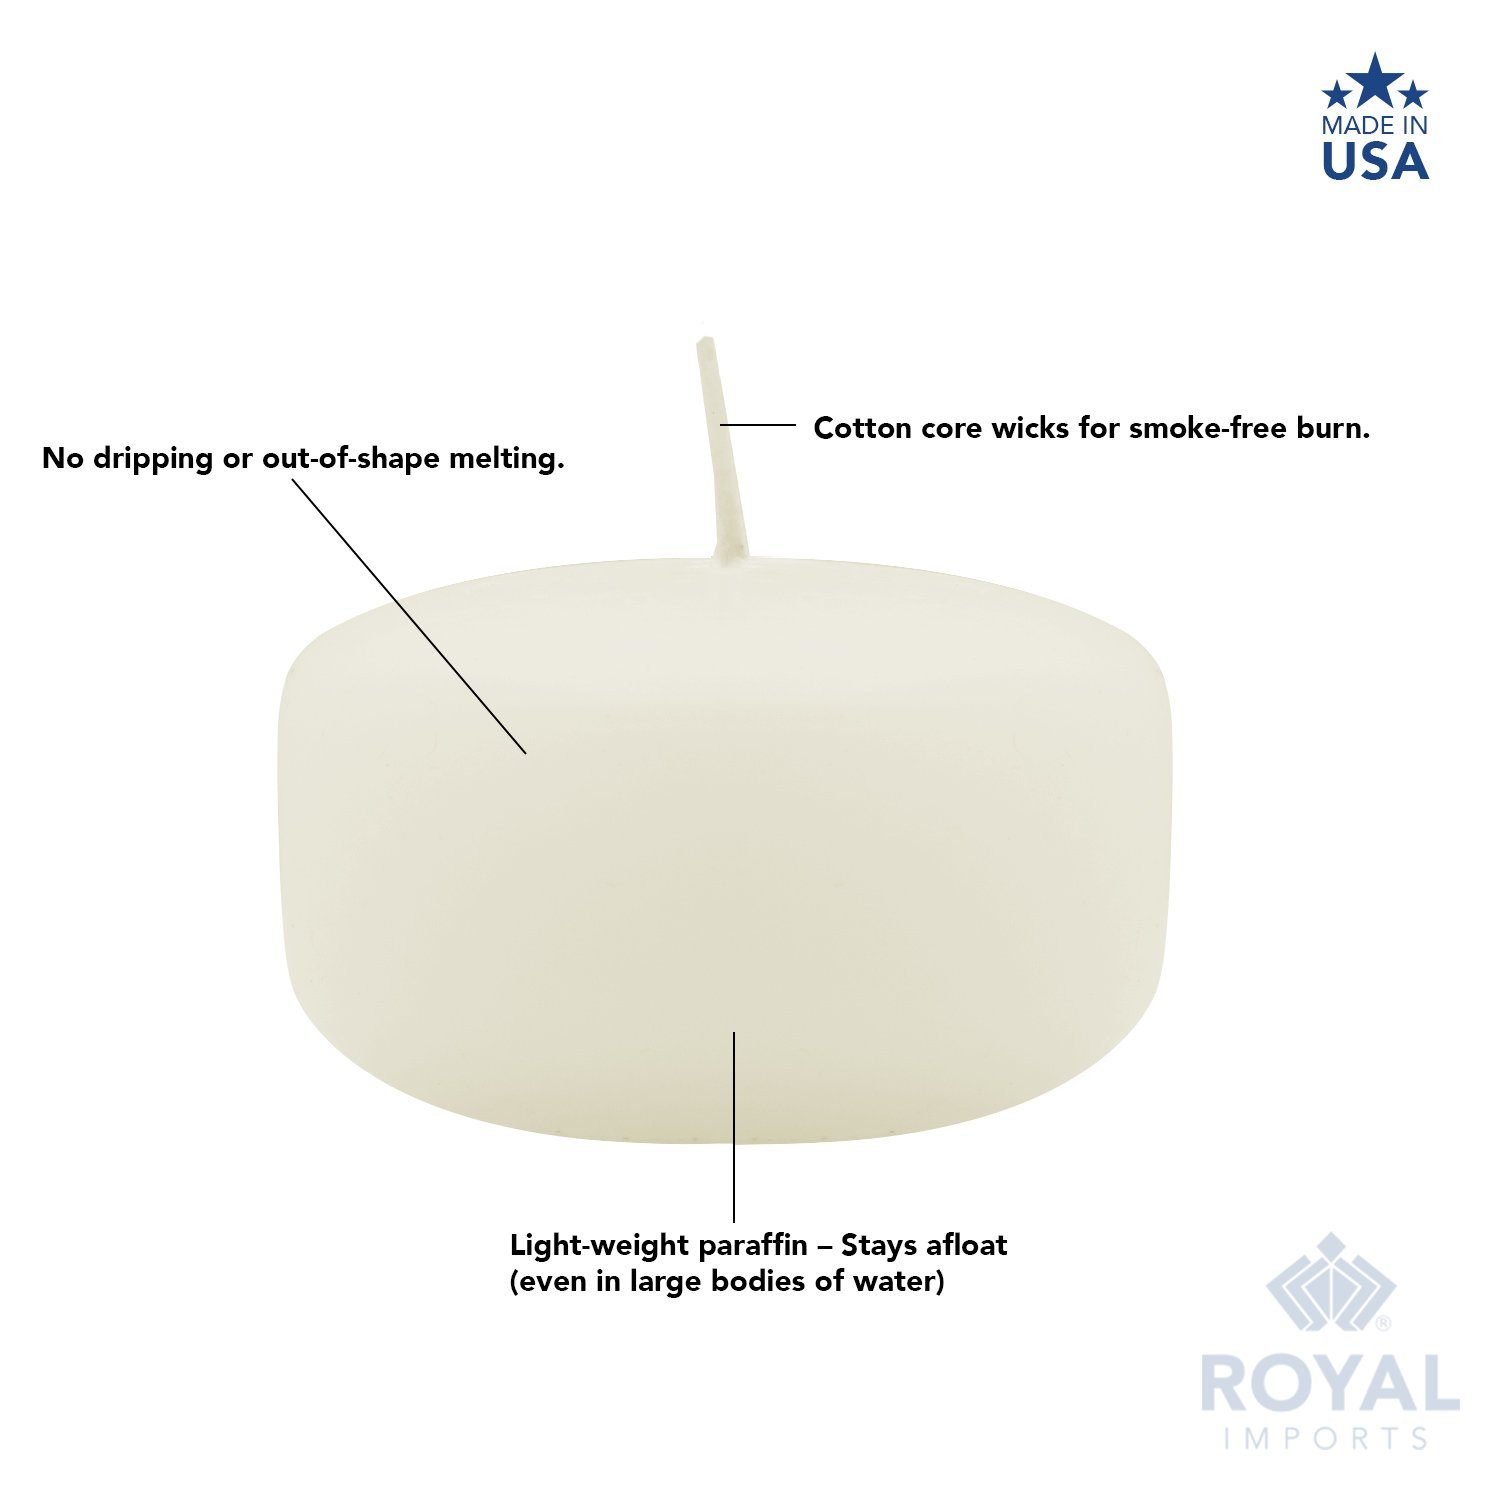 Royal Imports Floating disc Candles for Wedding, Birthday, Holiday & Home Decoration, 2 Inch, Ivory Wax, Set of 72 by Royal Imports (Image #4)